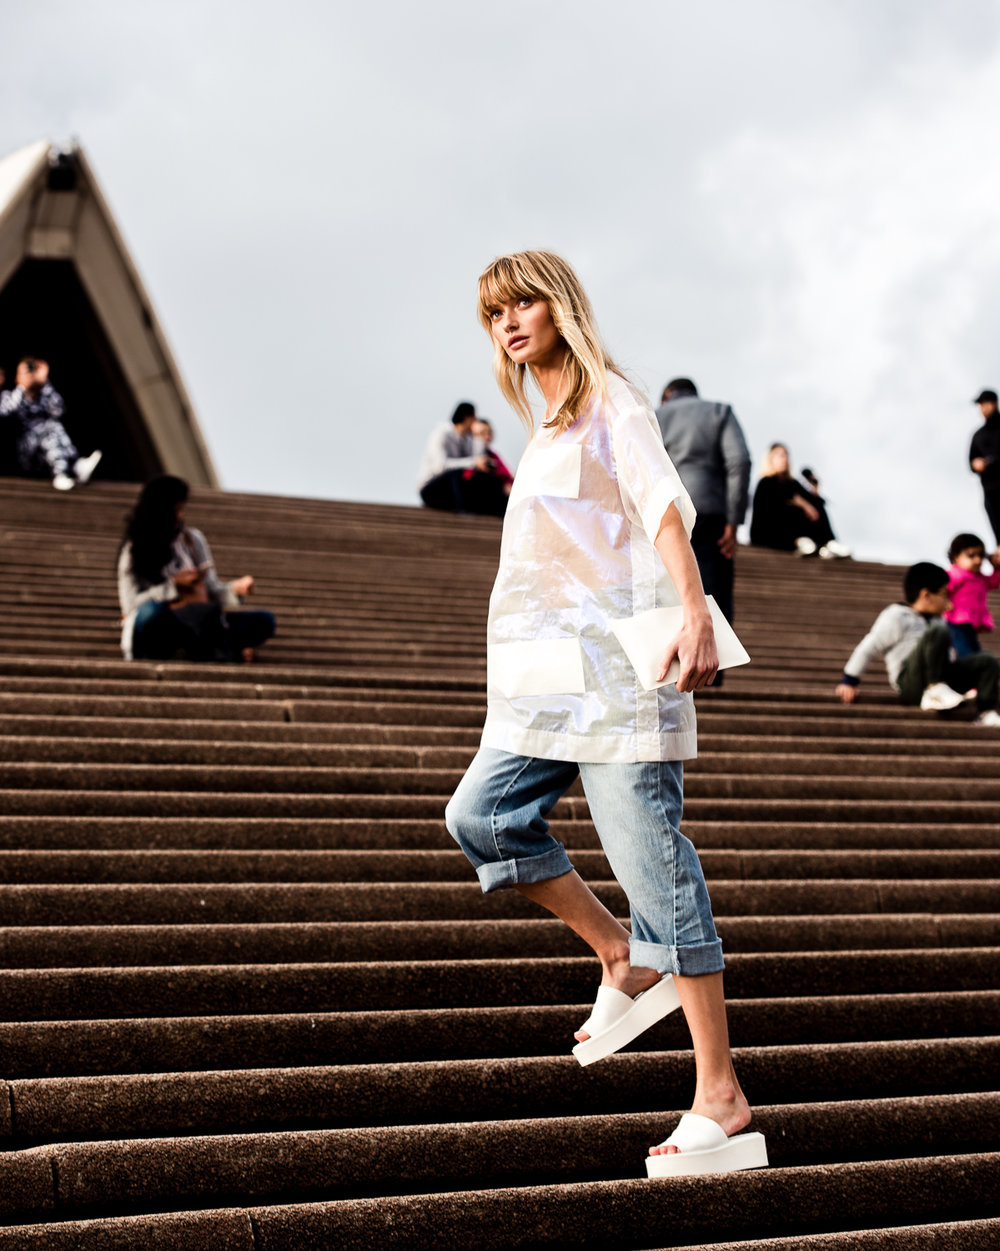 Annabella Barber (IMG Models) Spotted at MBFWA '17 on her way to the DION LEE show at the Sydney Opera House, wearing Surrounded by Ghosts.